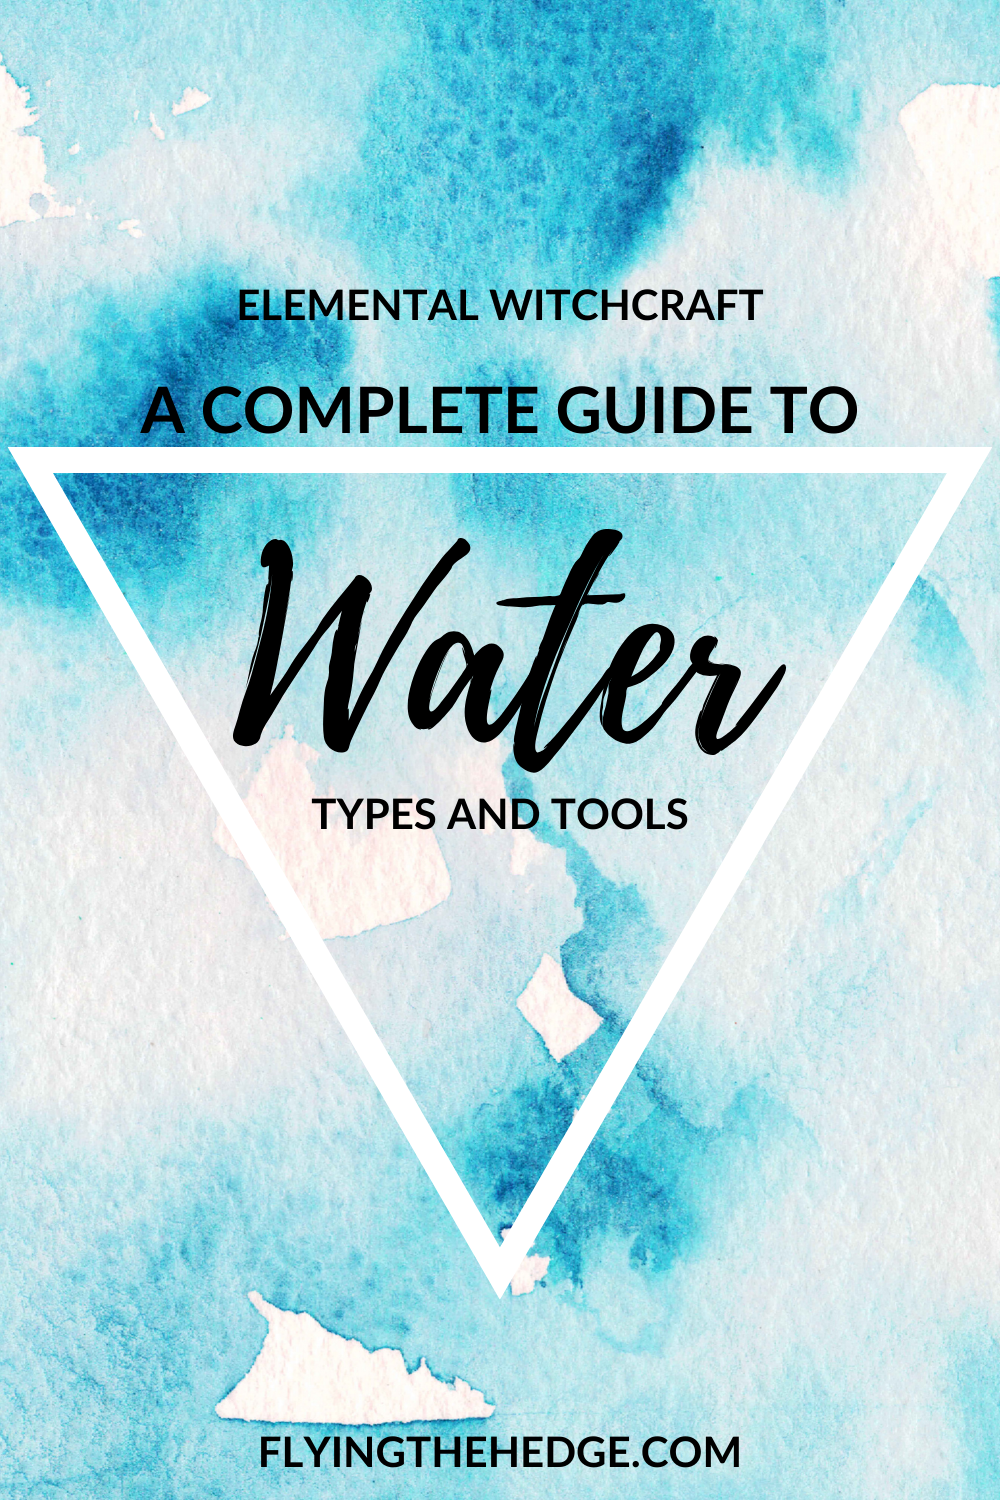 Elemental magic, water magic, tools of water, types of water, water witchcraft, water witch, sea witch, witchcraft, elements, water